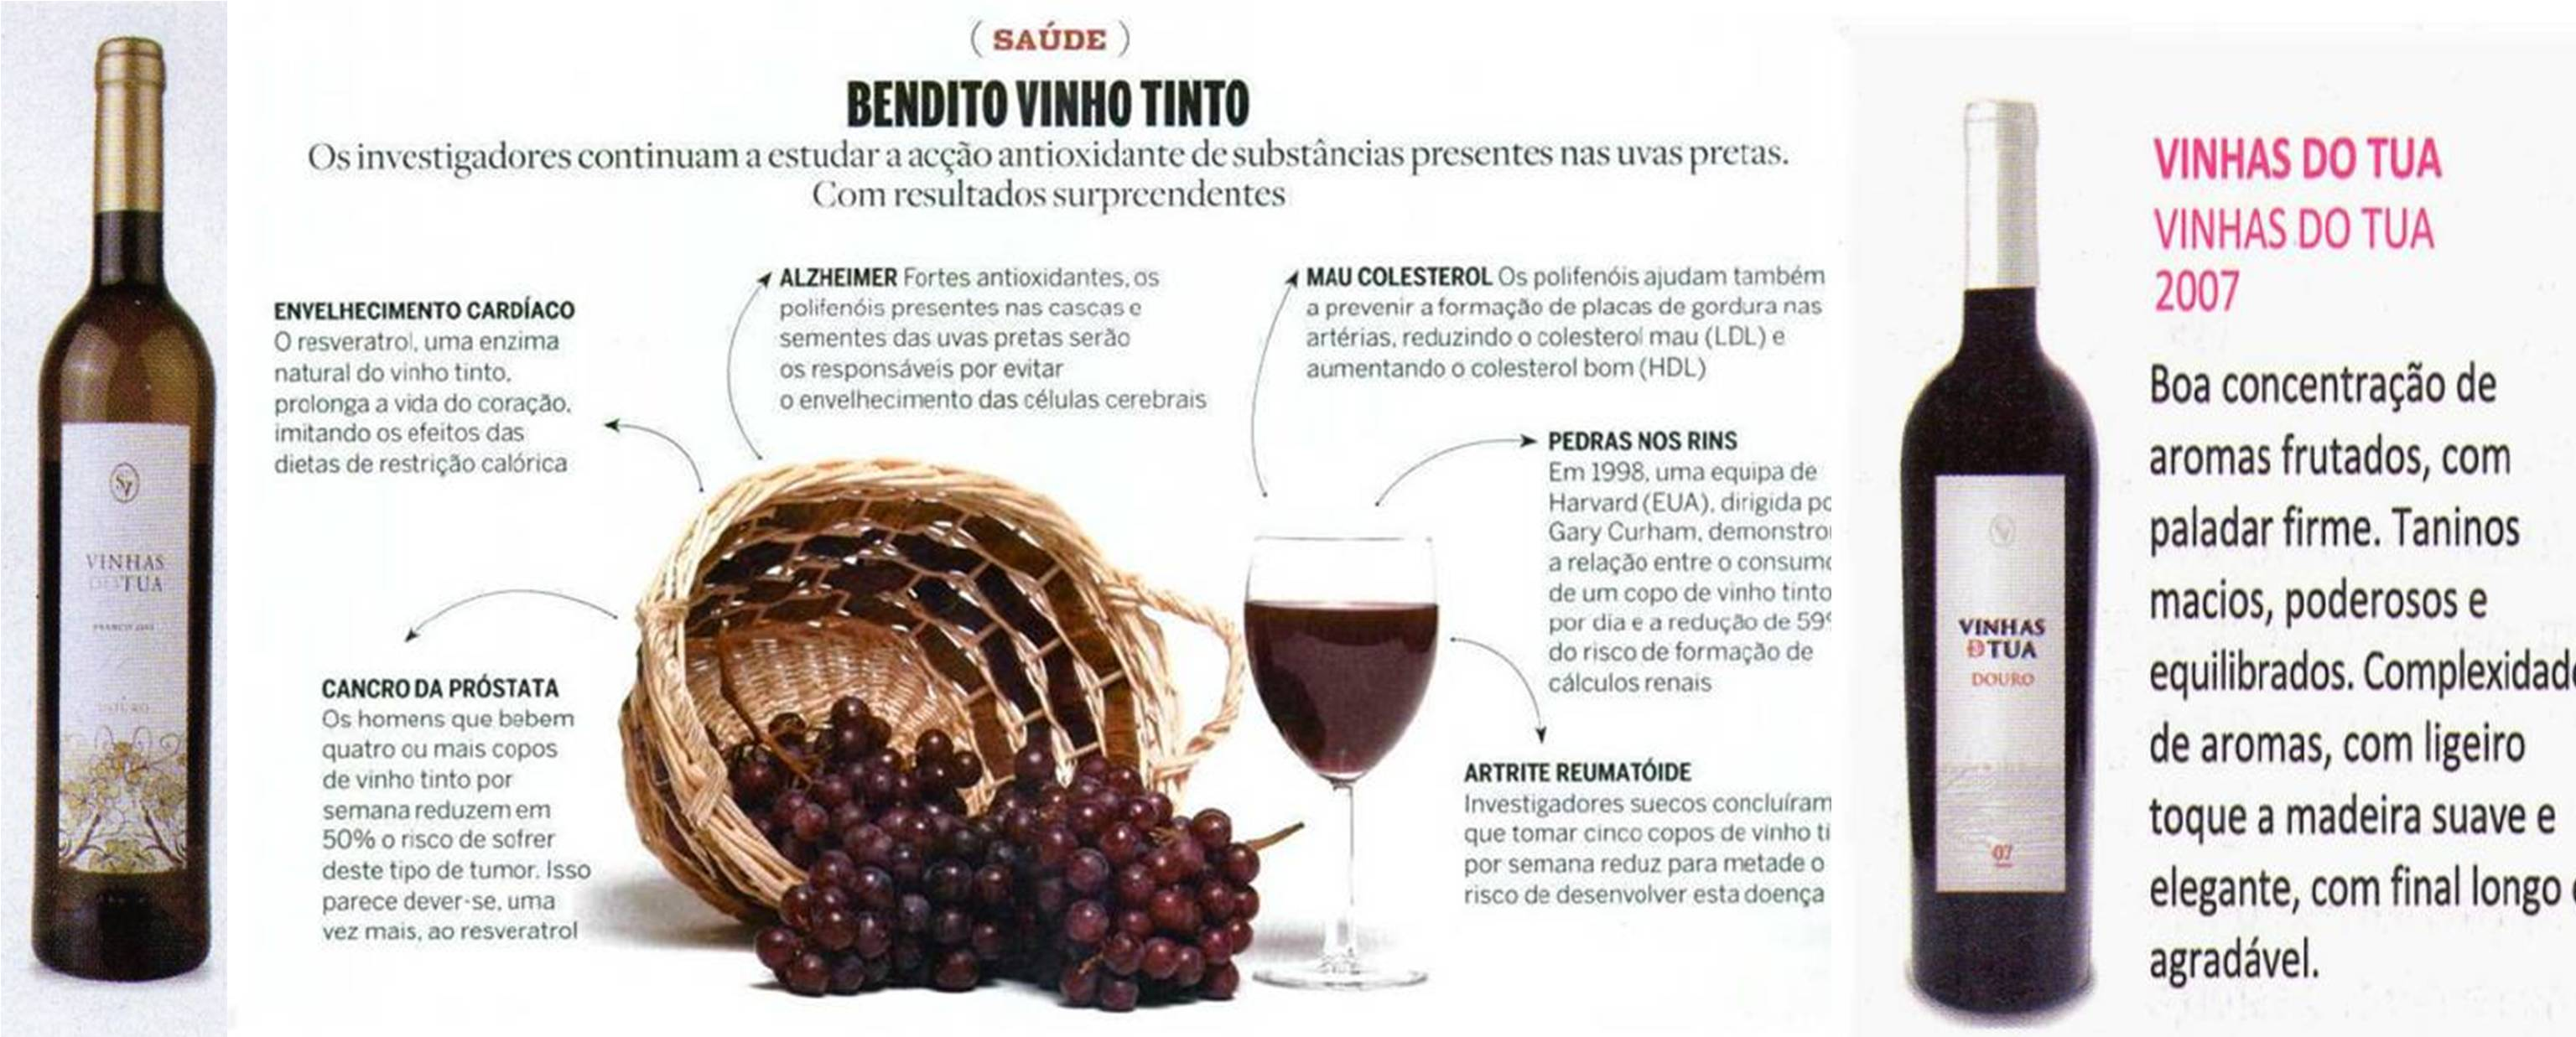 beneficios-do-vinho